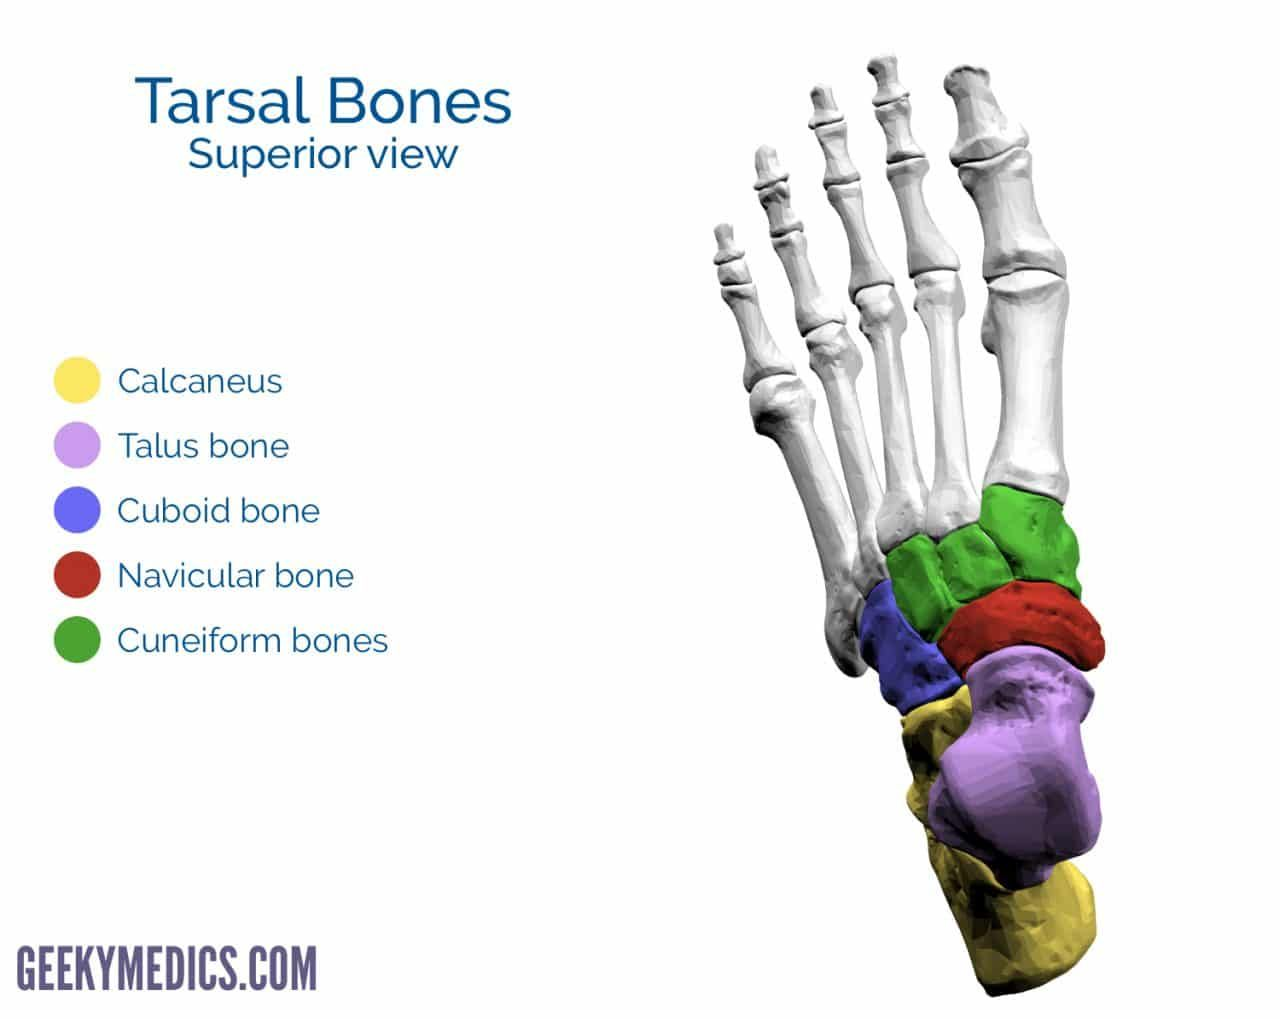 Tarsal Bones Of The Foot Superior View Basic Anatomy And Physiology Anatomy Bones Human Anatomy And Physiology